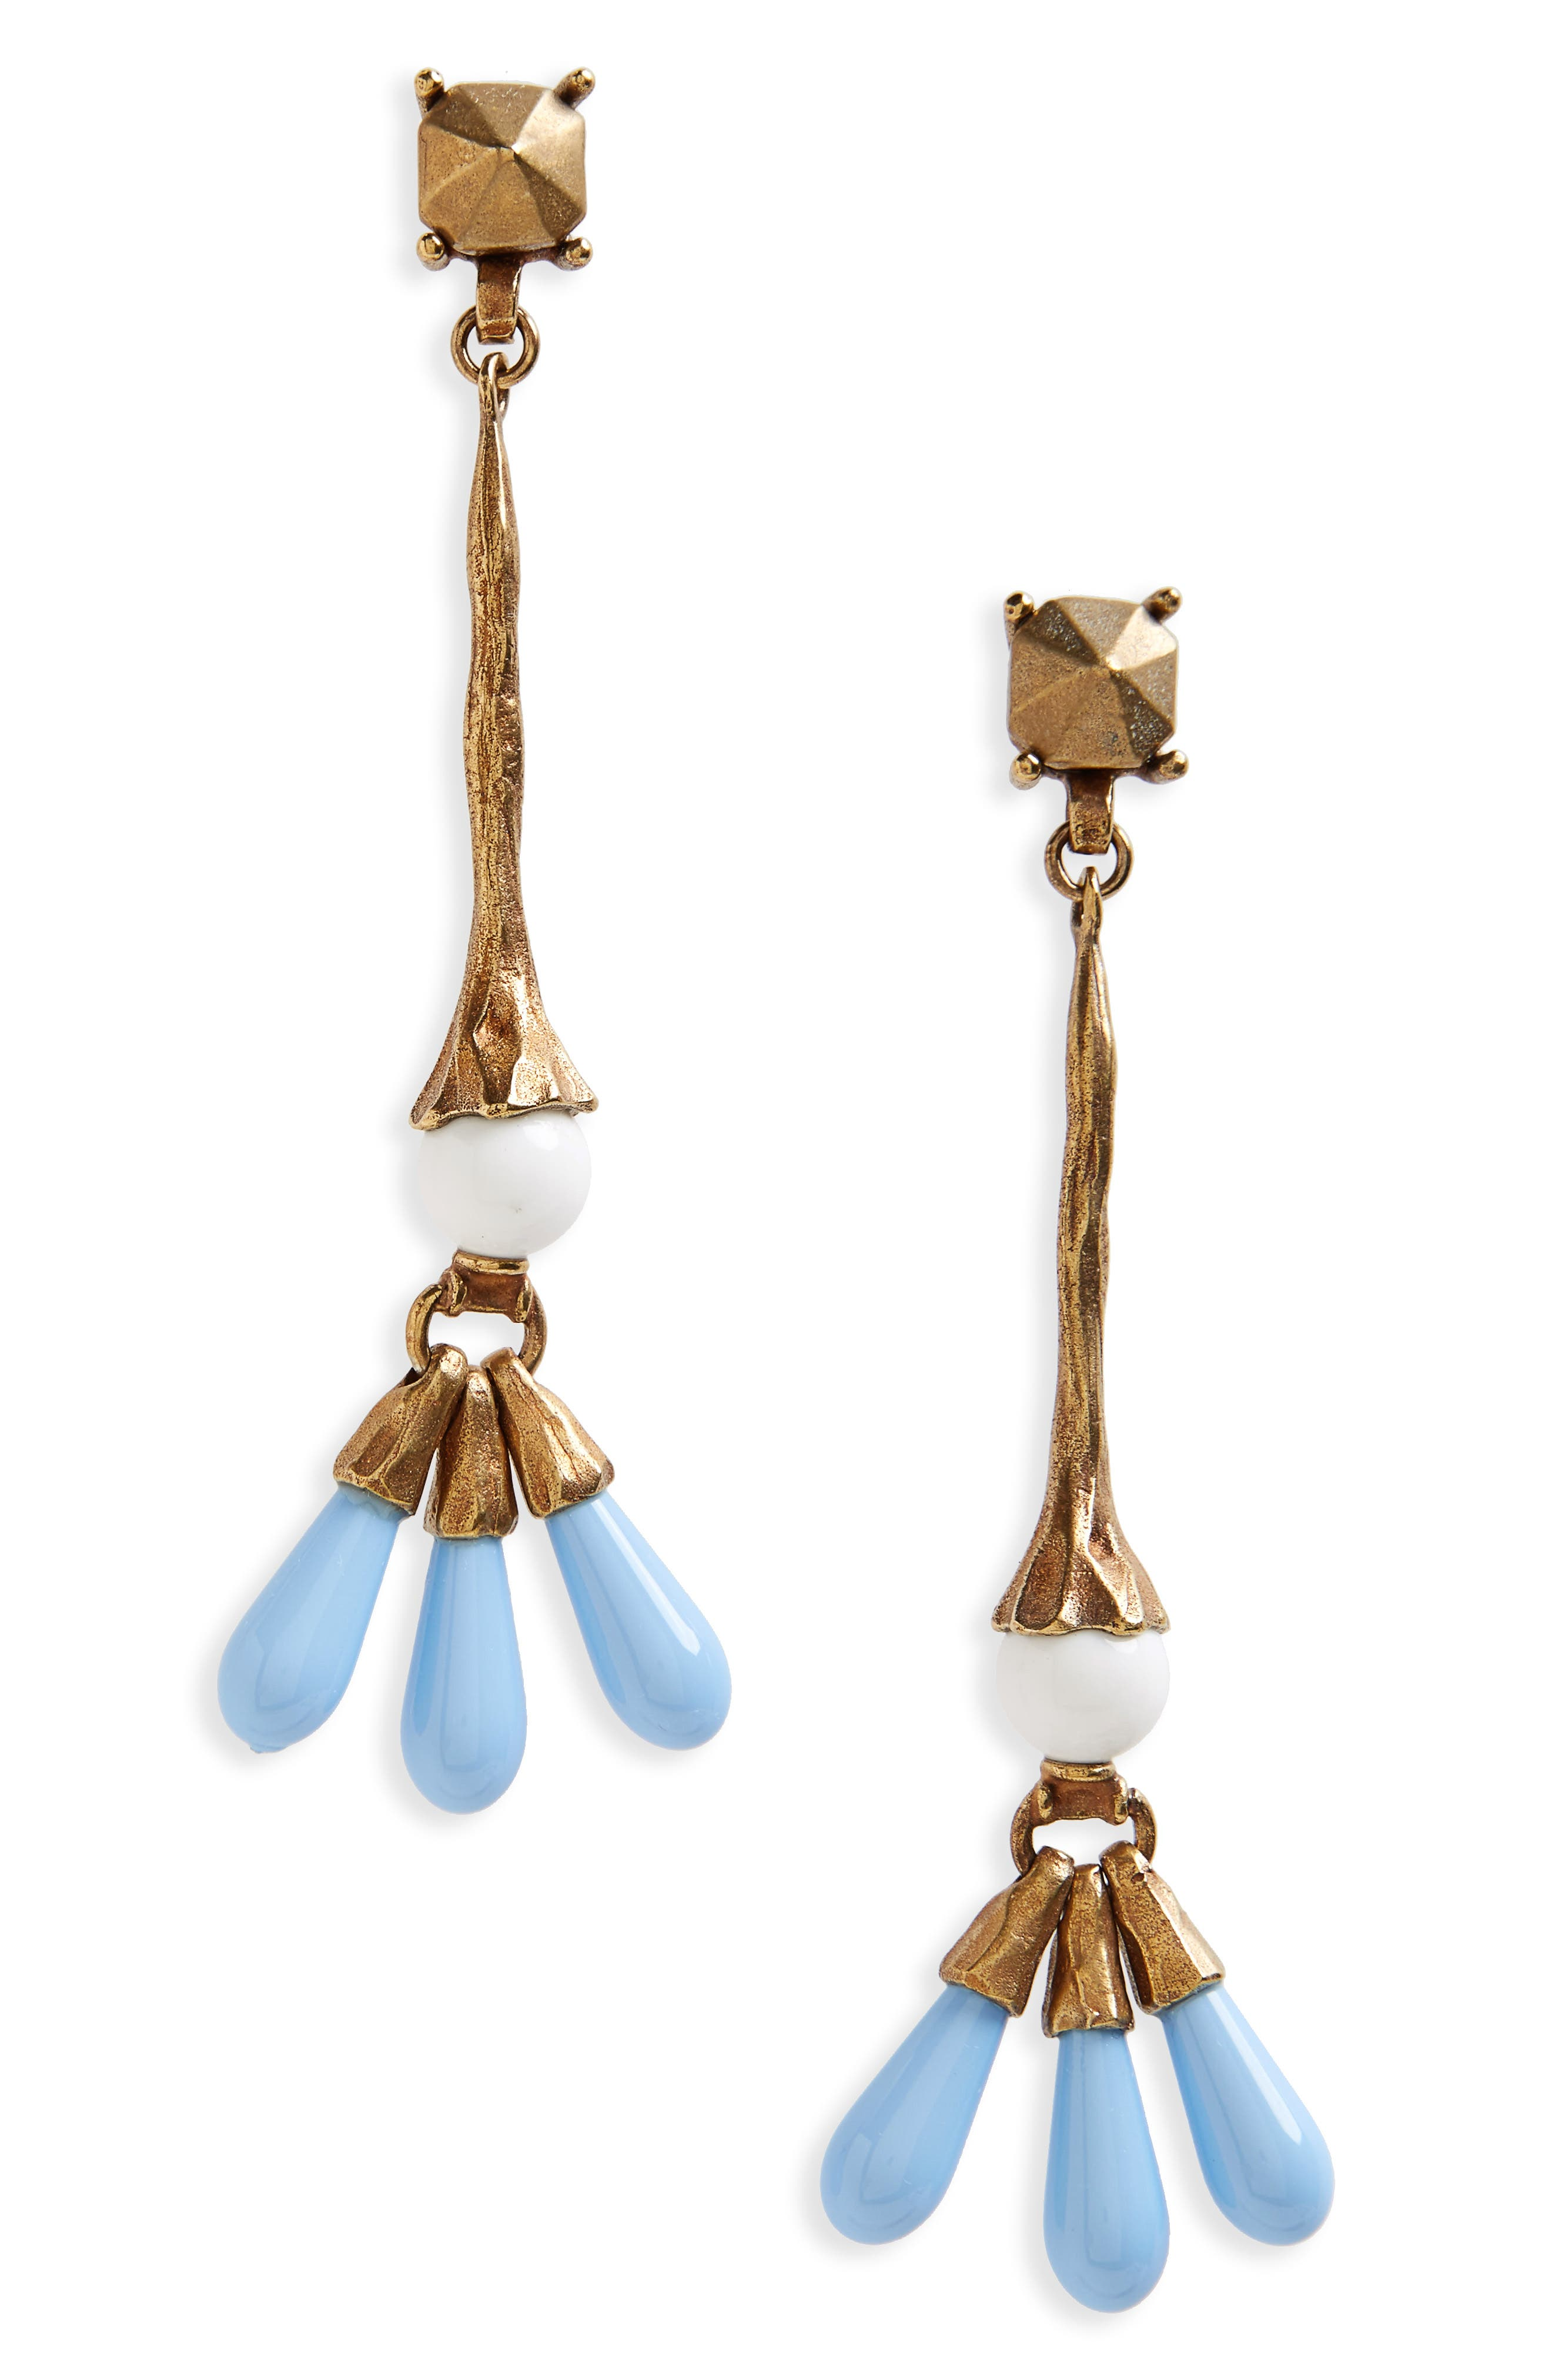 Drop Earrings,                         Main,                         color, A.Gold/ Bianco/ Turchese